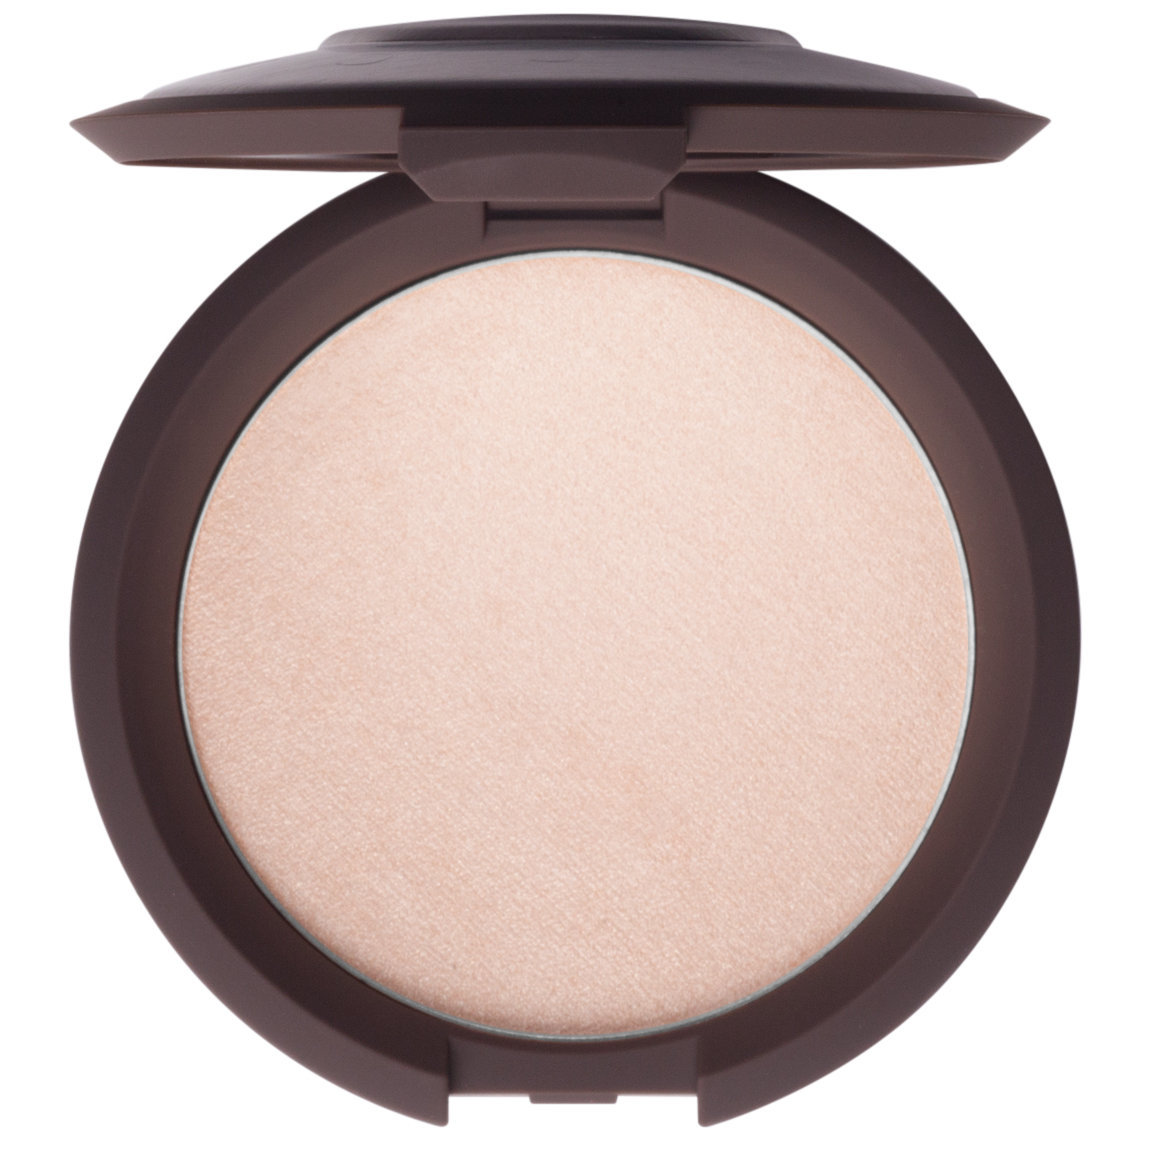 BECCA Shimmering Skin Perfector Pressed Moonstone | Beautylish